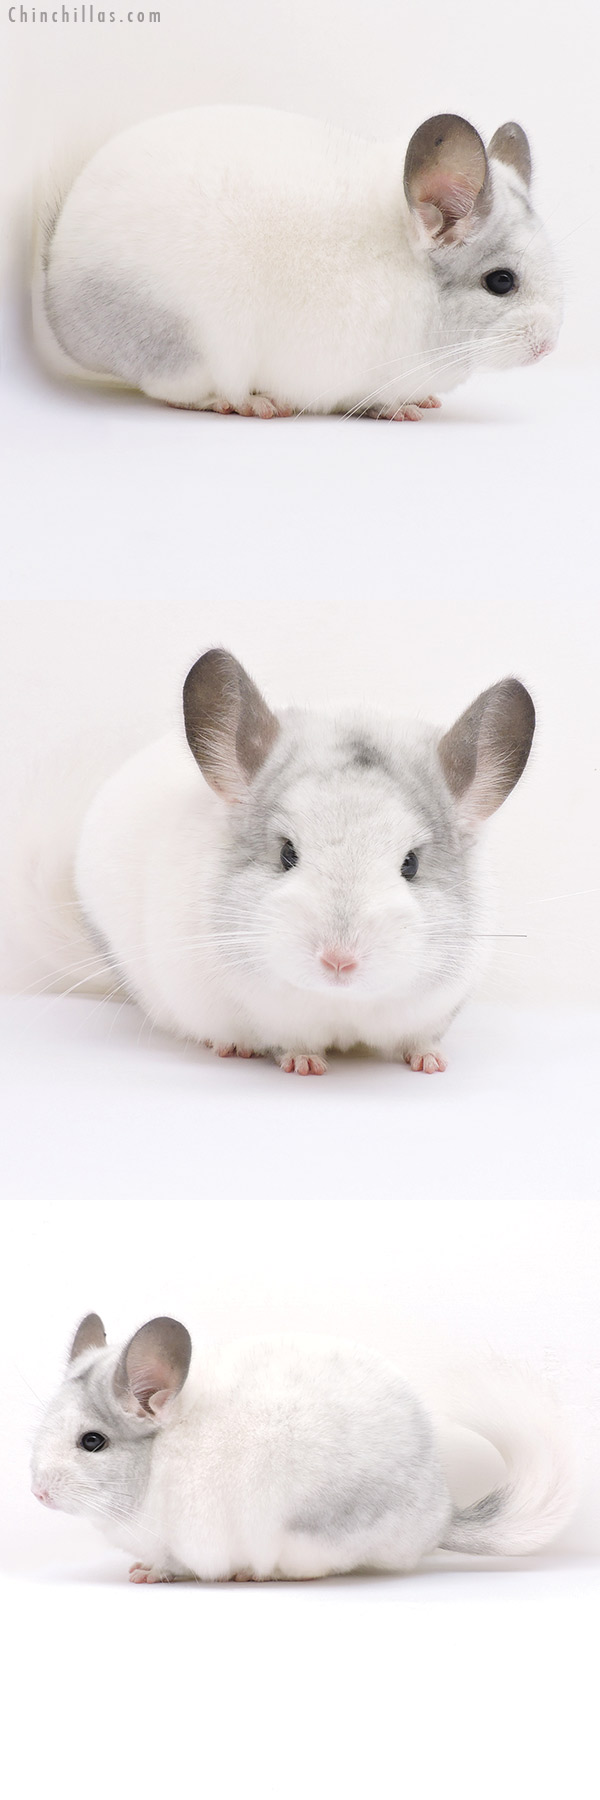 16331 Top Show Quality White Mosaic Male Chinchilla